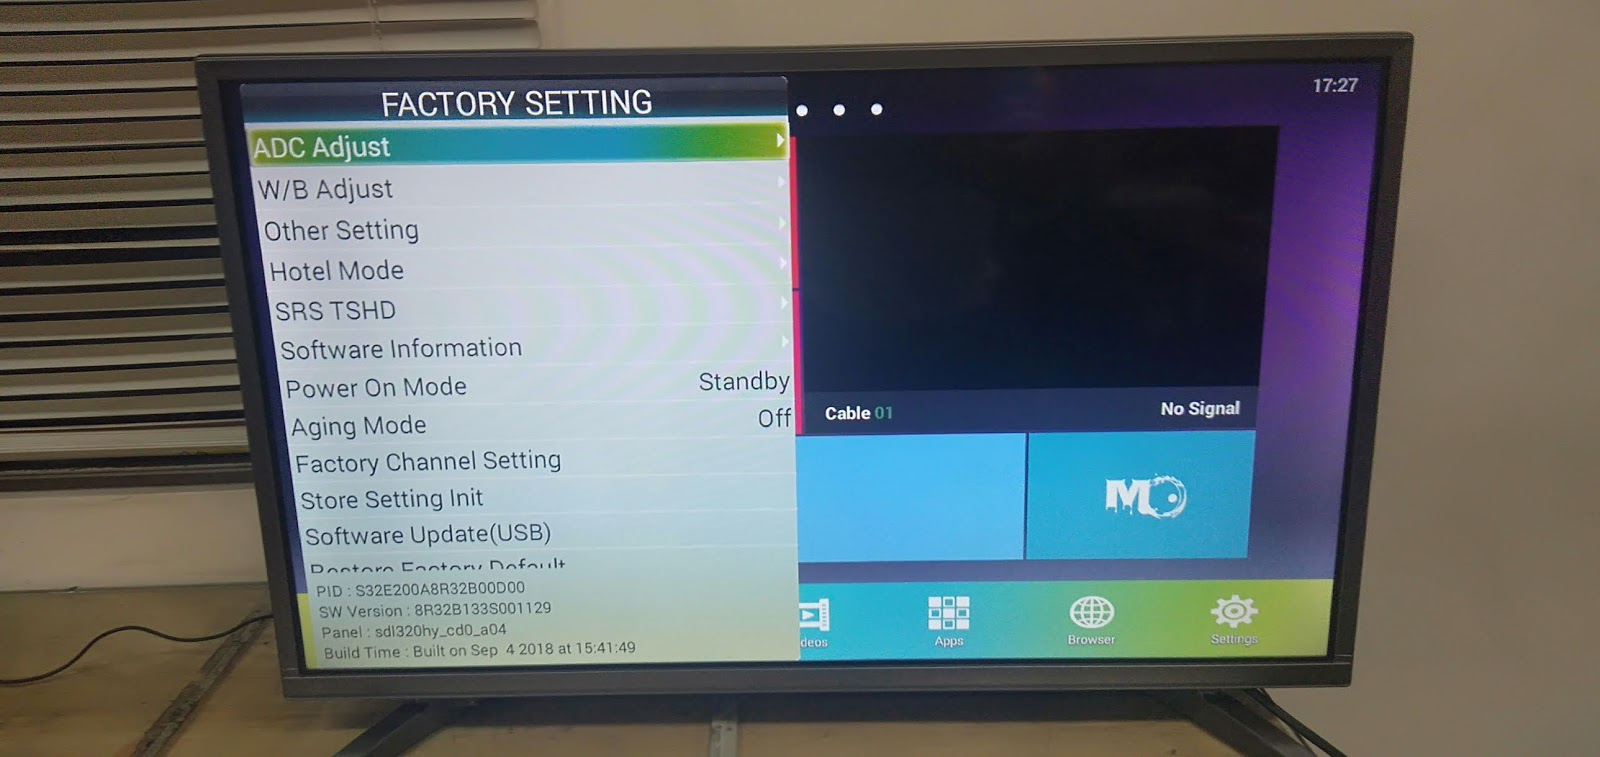 How to Software Update the Skyworth 32E2000 Android Digital TV?